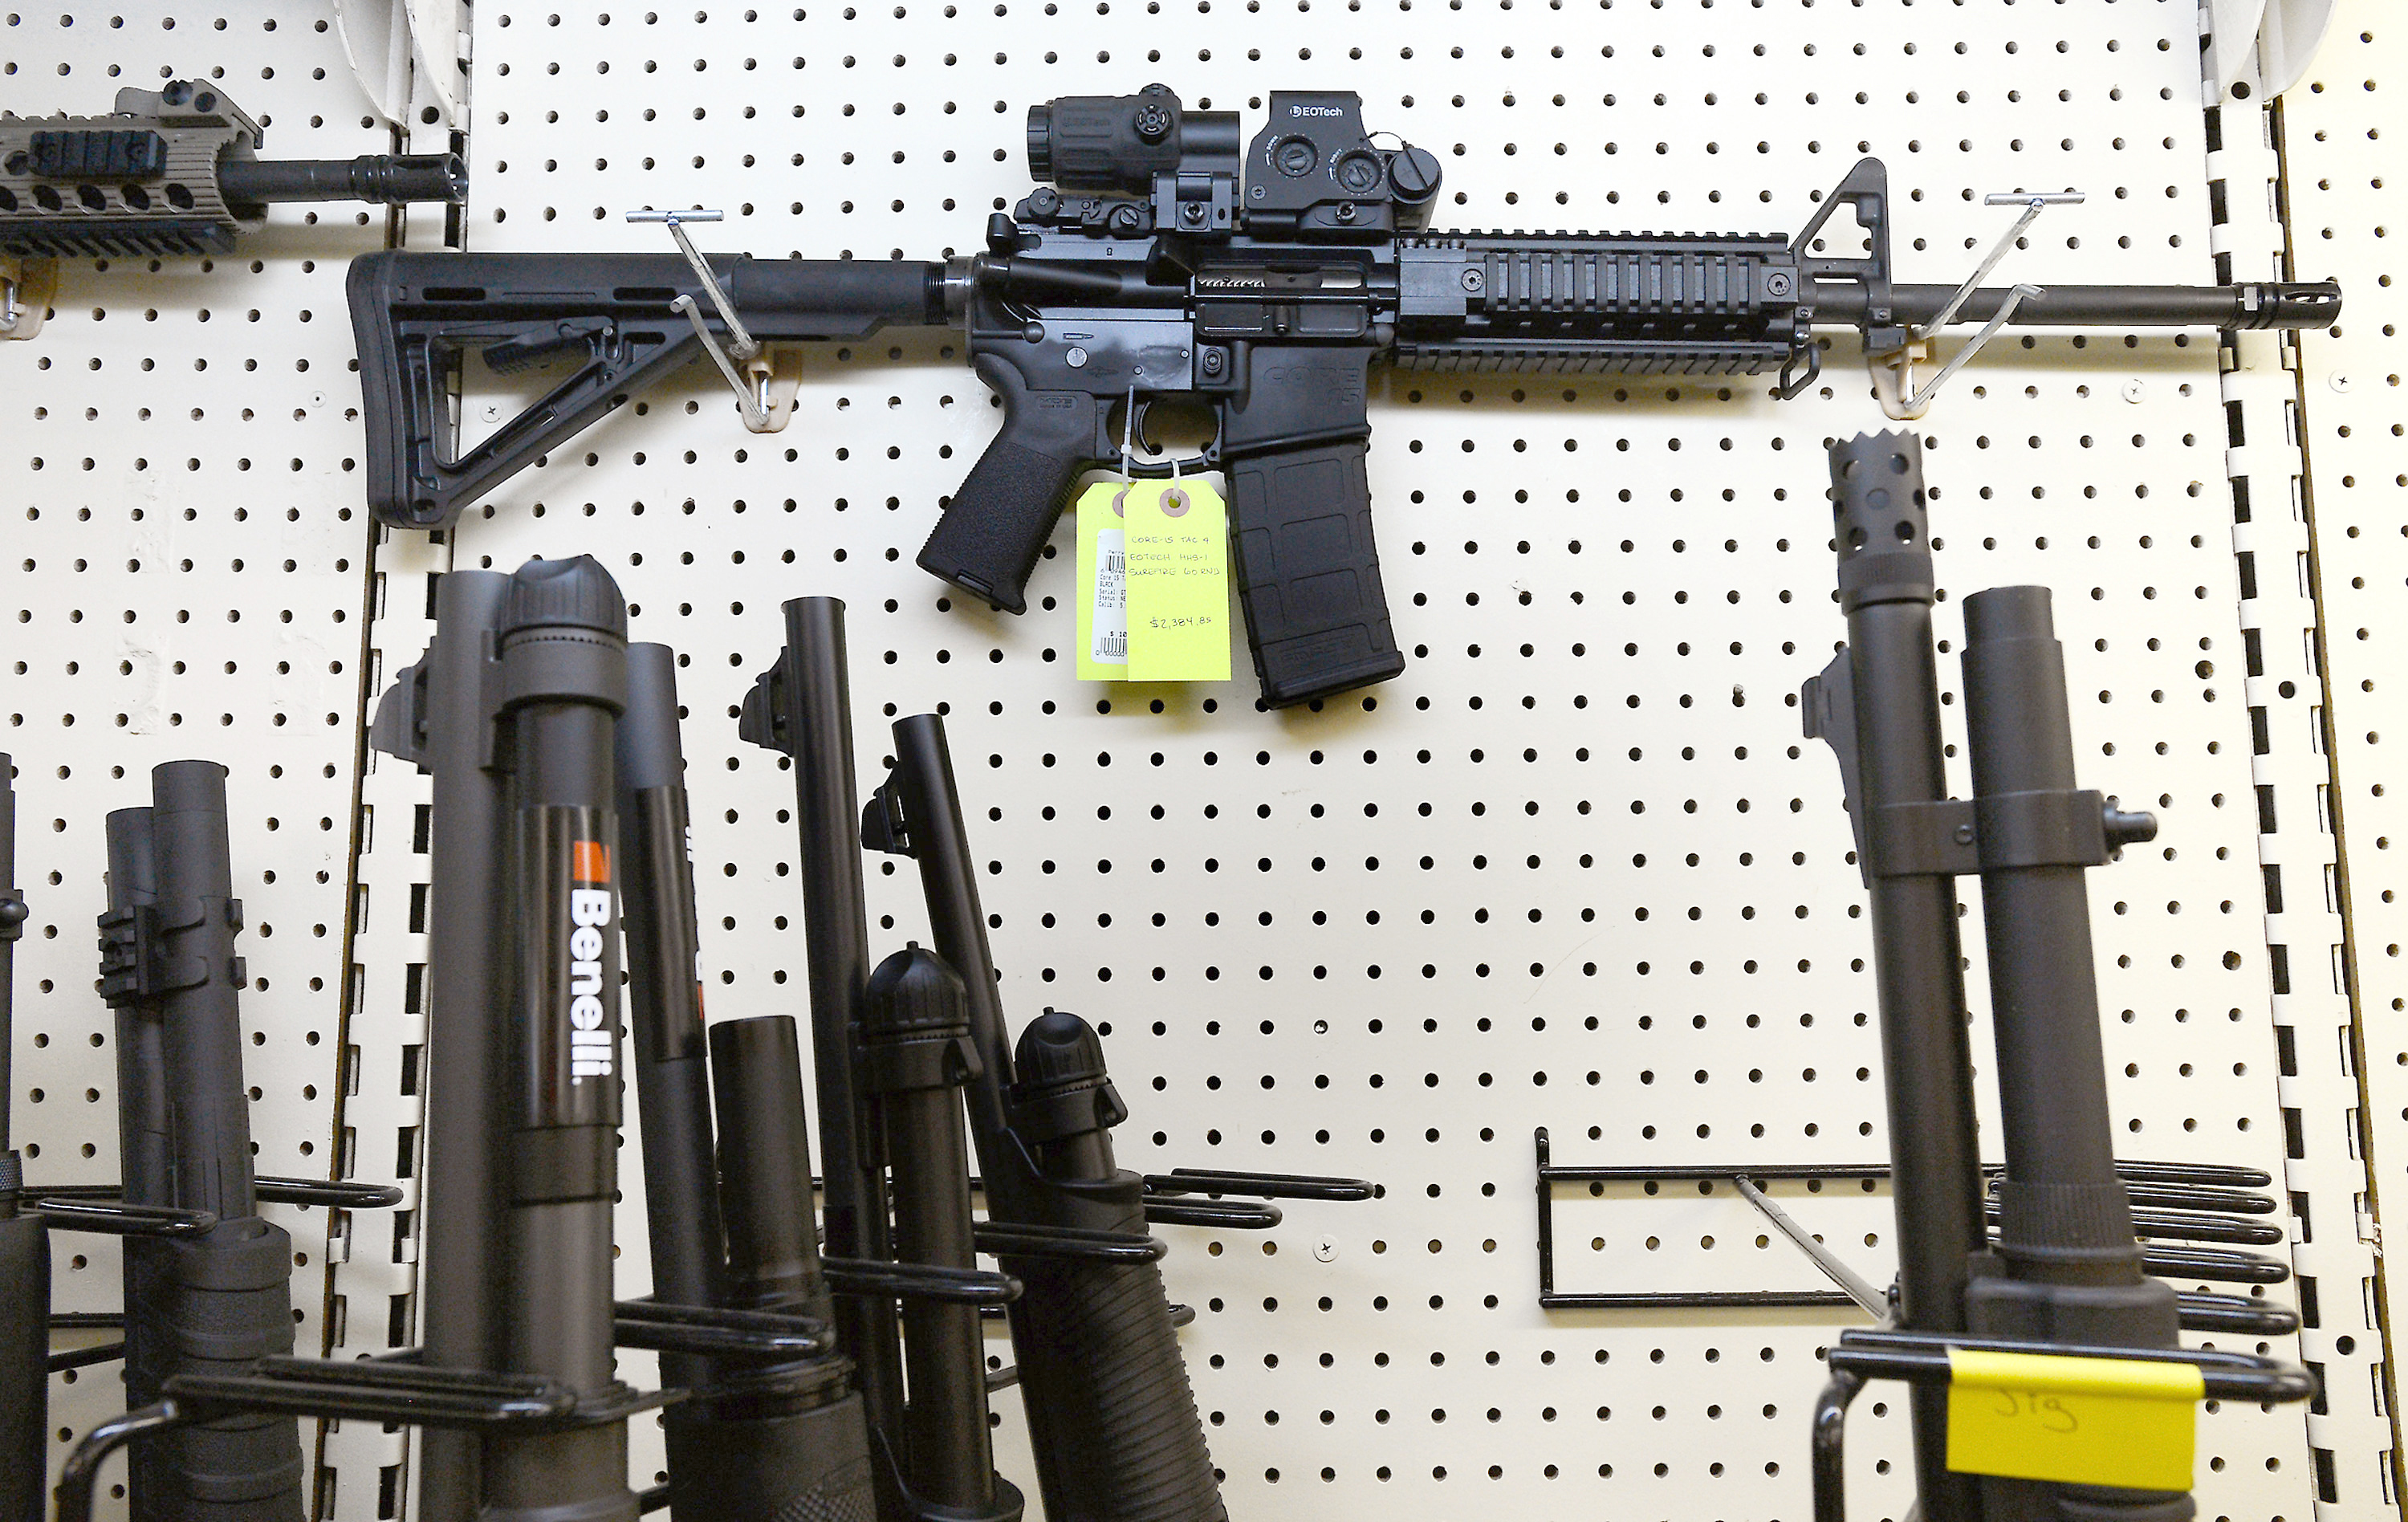 On display at Perry's Gun Shop in Wendell, N.C., an AR-15 assault rifle manufactured by Core15 Rifle Systems.